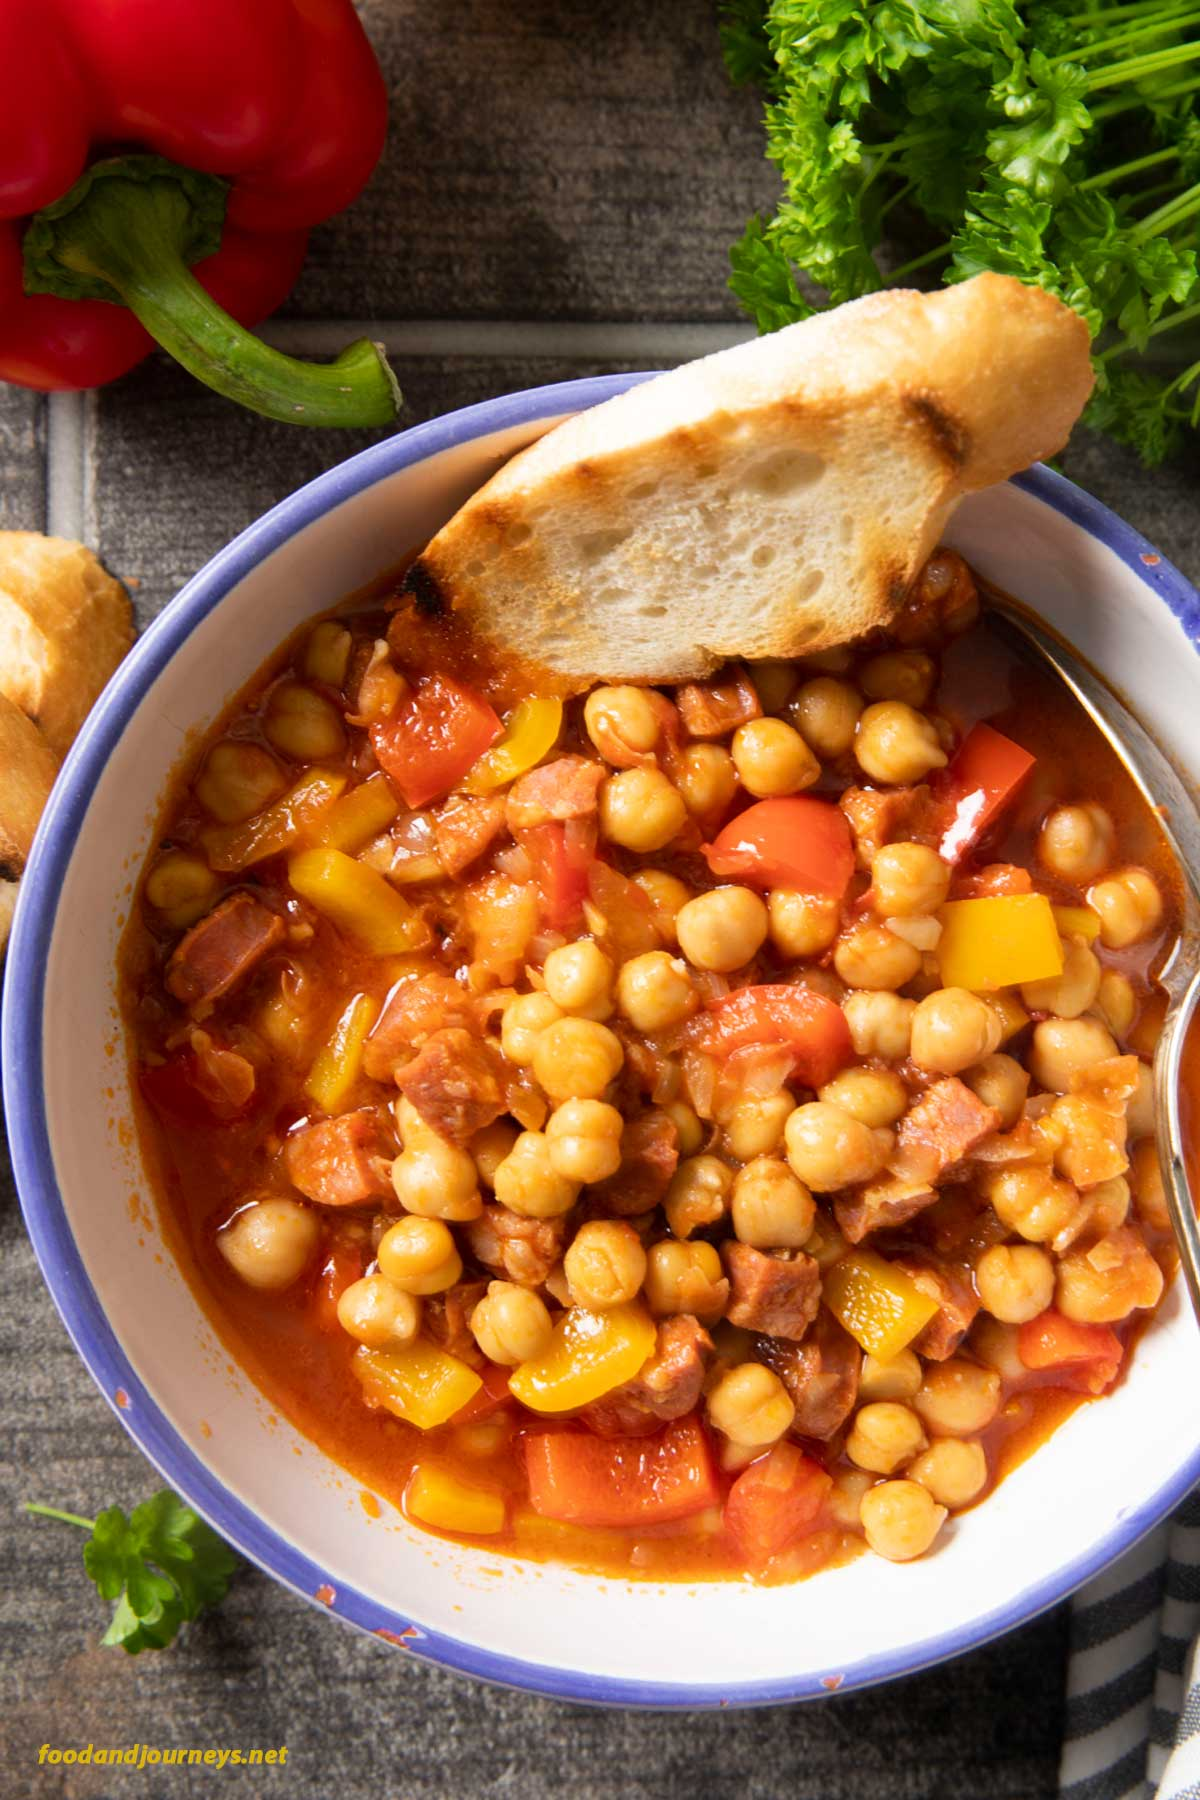 An overhead shot of a bowl of Spanish Chorizo and Chickpea Stew, served with a slice of toasted bread, more bread on the side of the bowl.